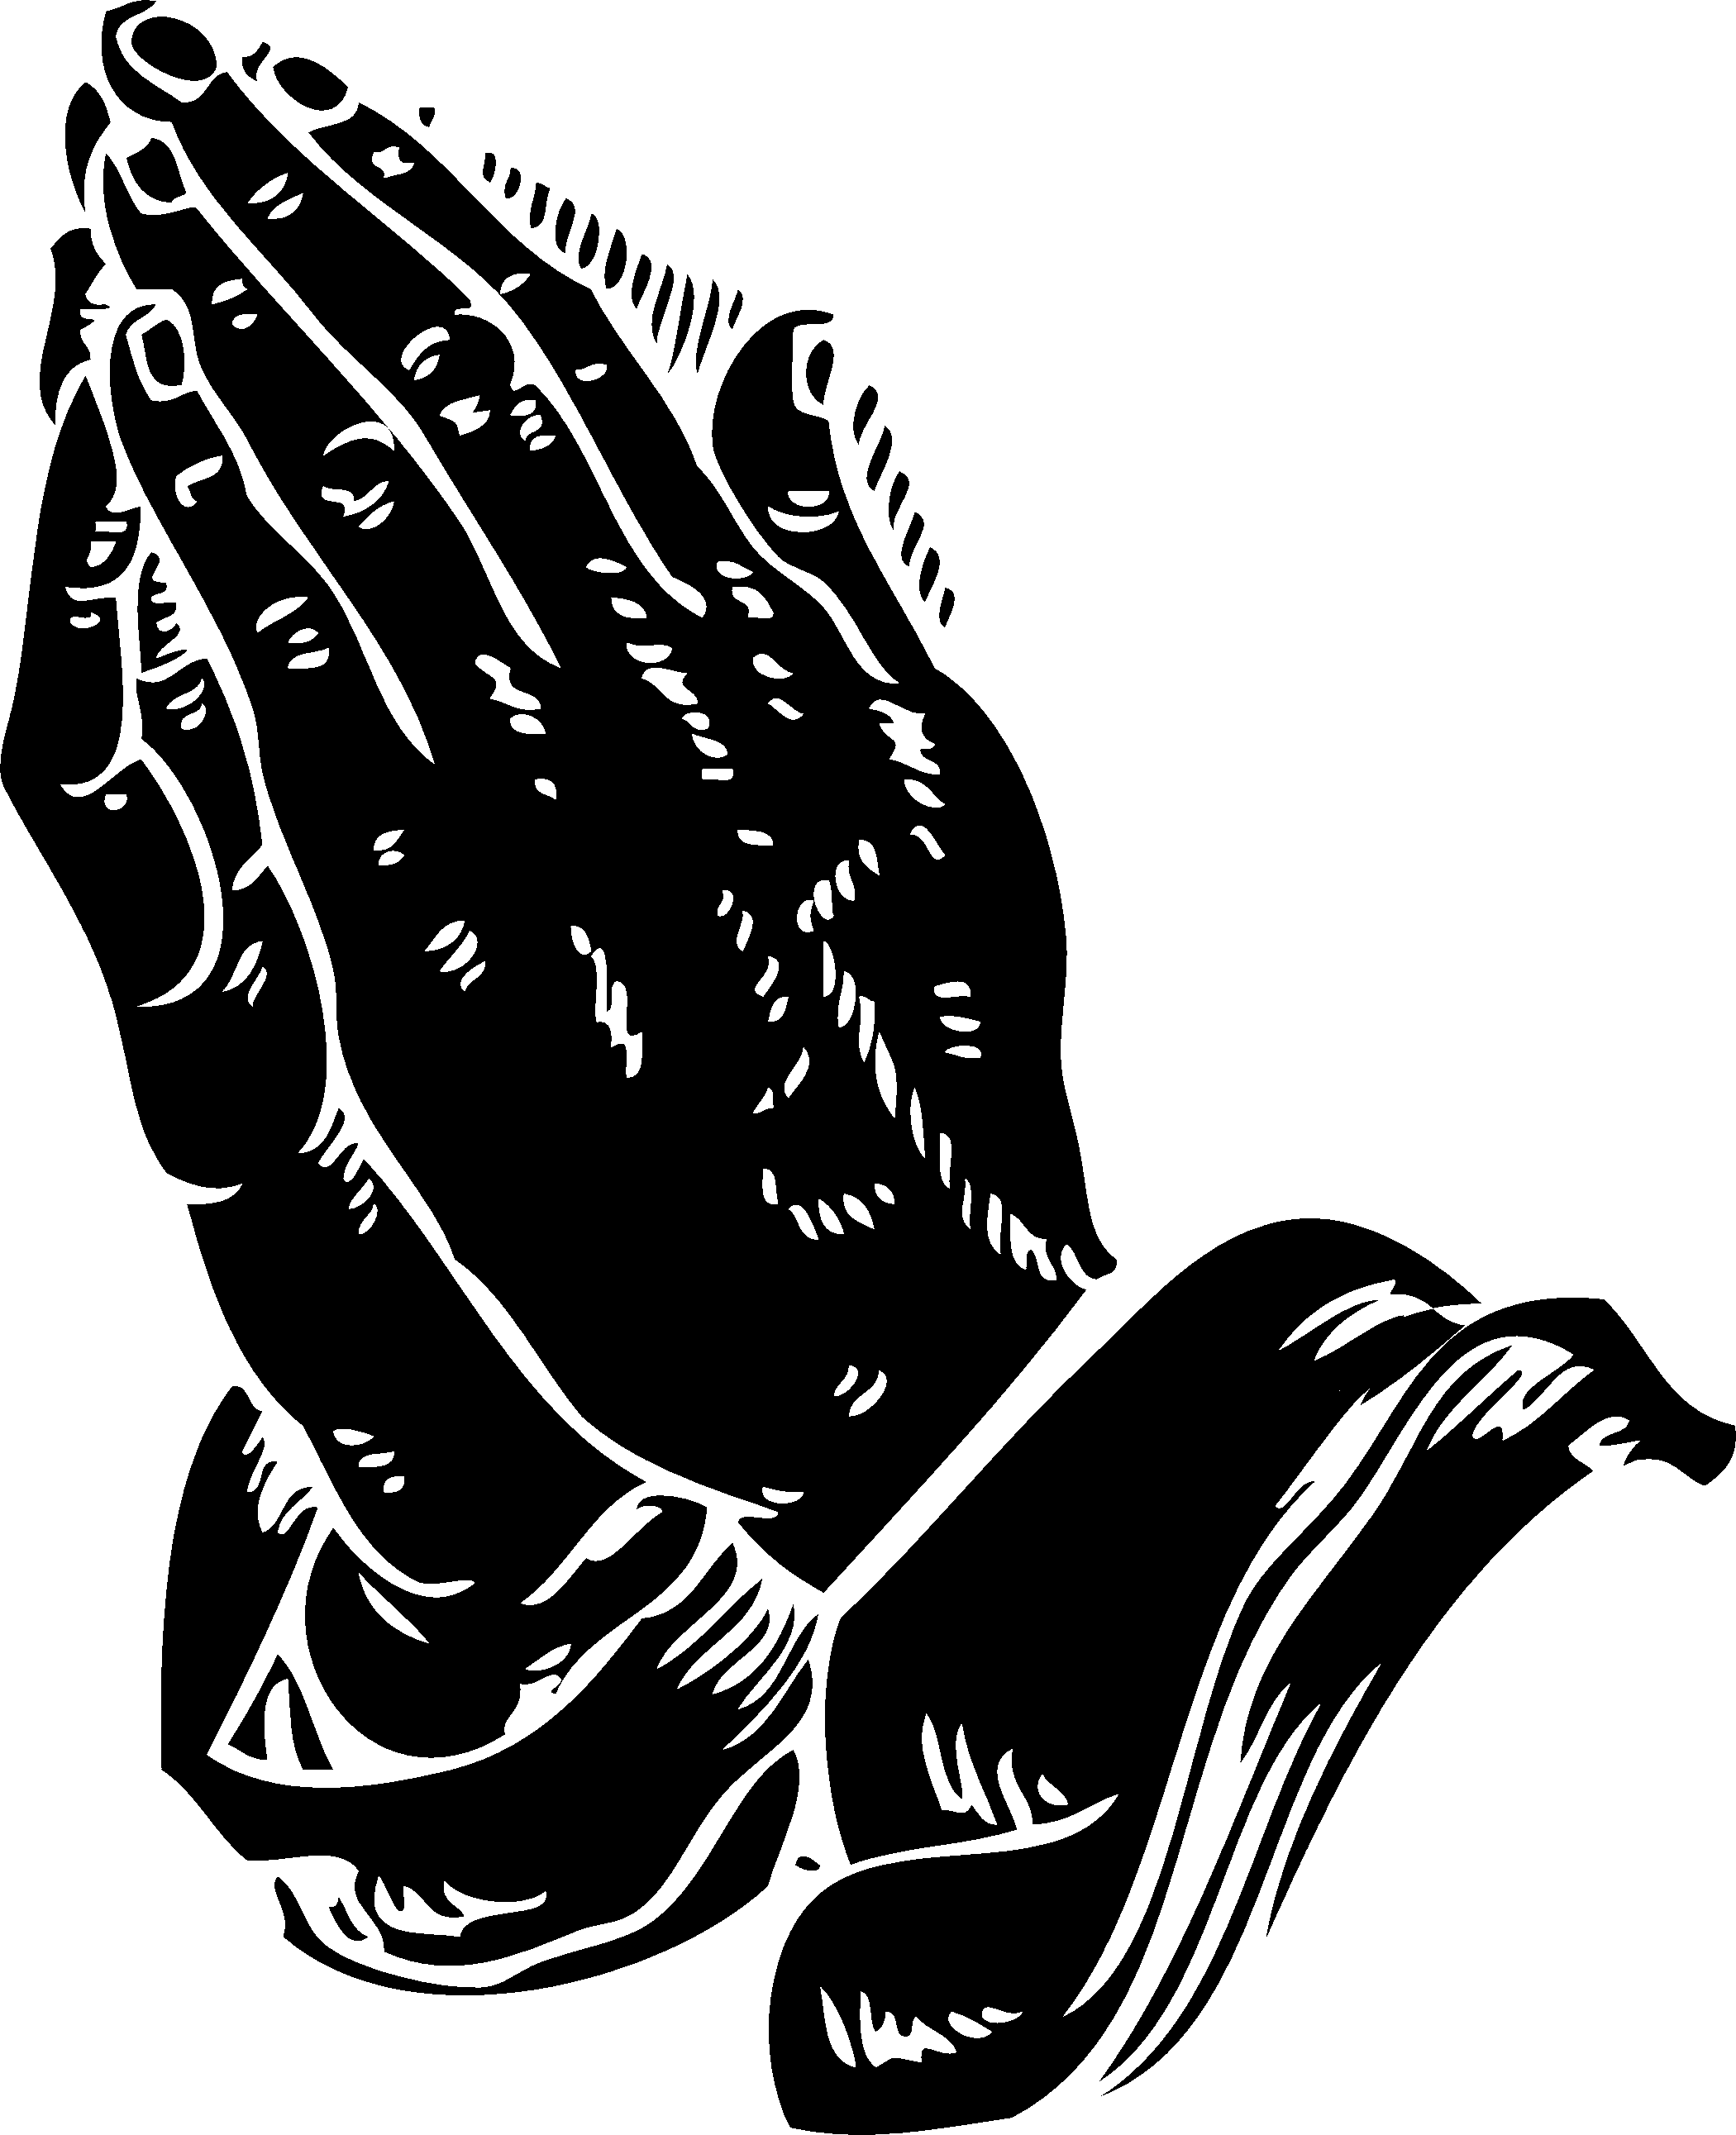 Peel Not Lest Ye Be Peeled Praying Hands Praying Hands Images Hand Silhouette